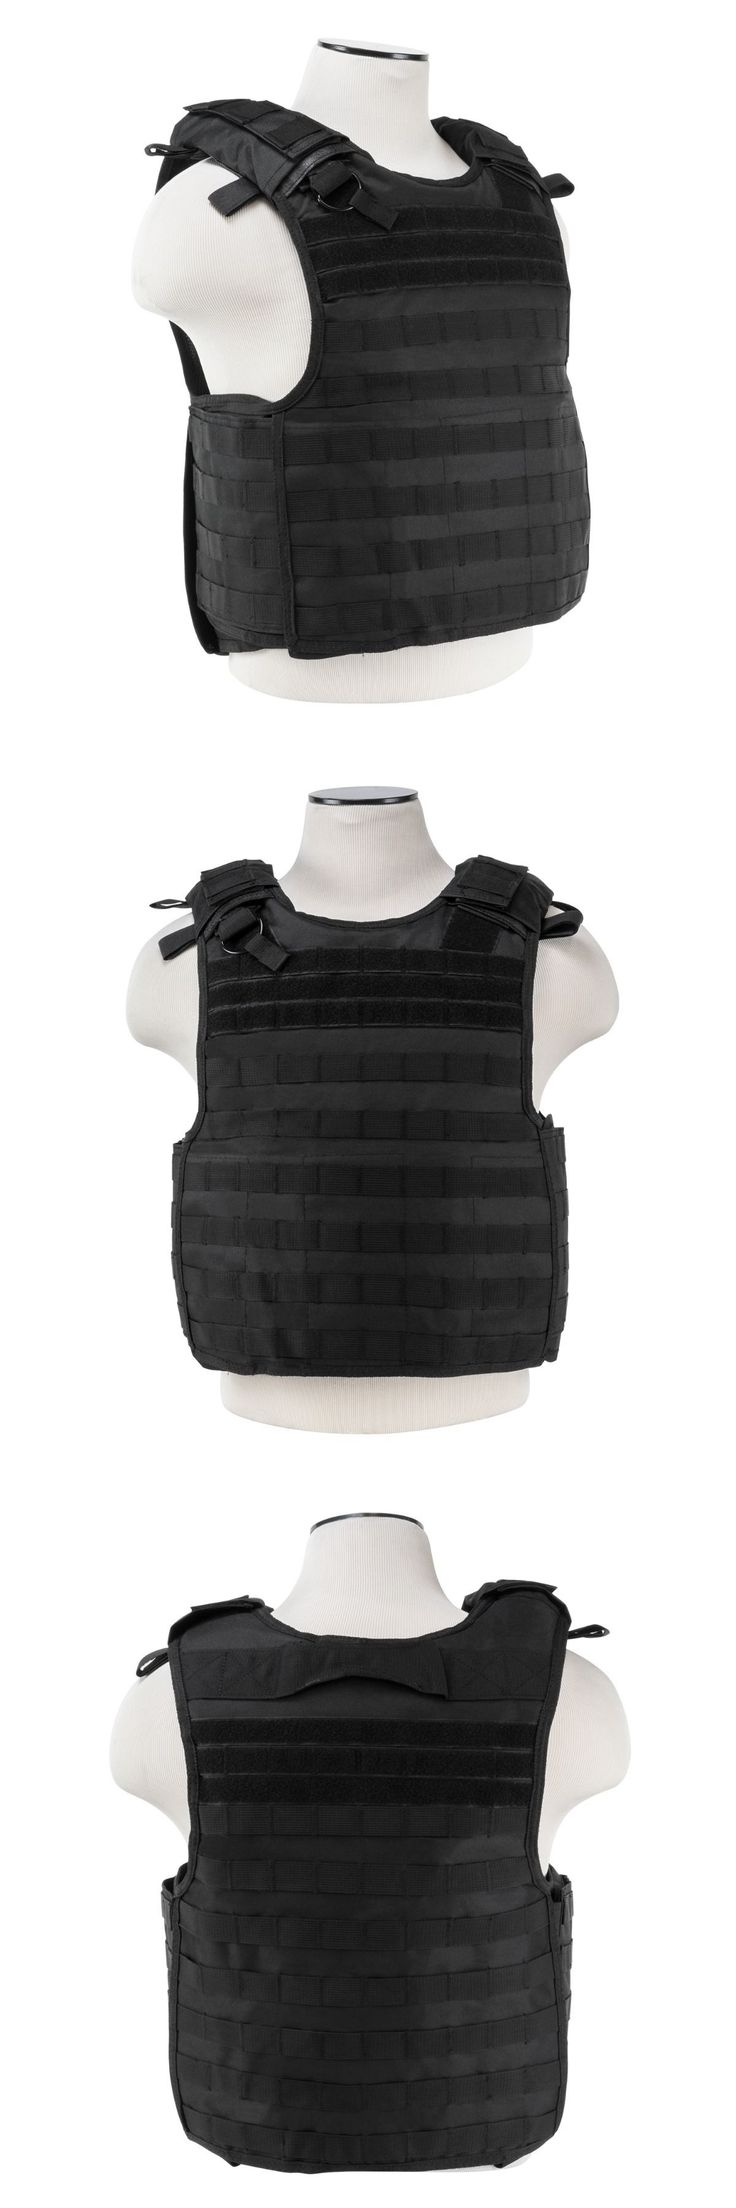 Chest Rigs and Tactical Vests 177891: Ncstar Vism Black Quick Release Operator Plate Carrier Body Armor Chest Rig -> BUY IT NOW ONLY: $54.95 on eBay!